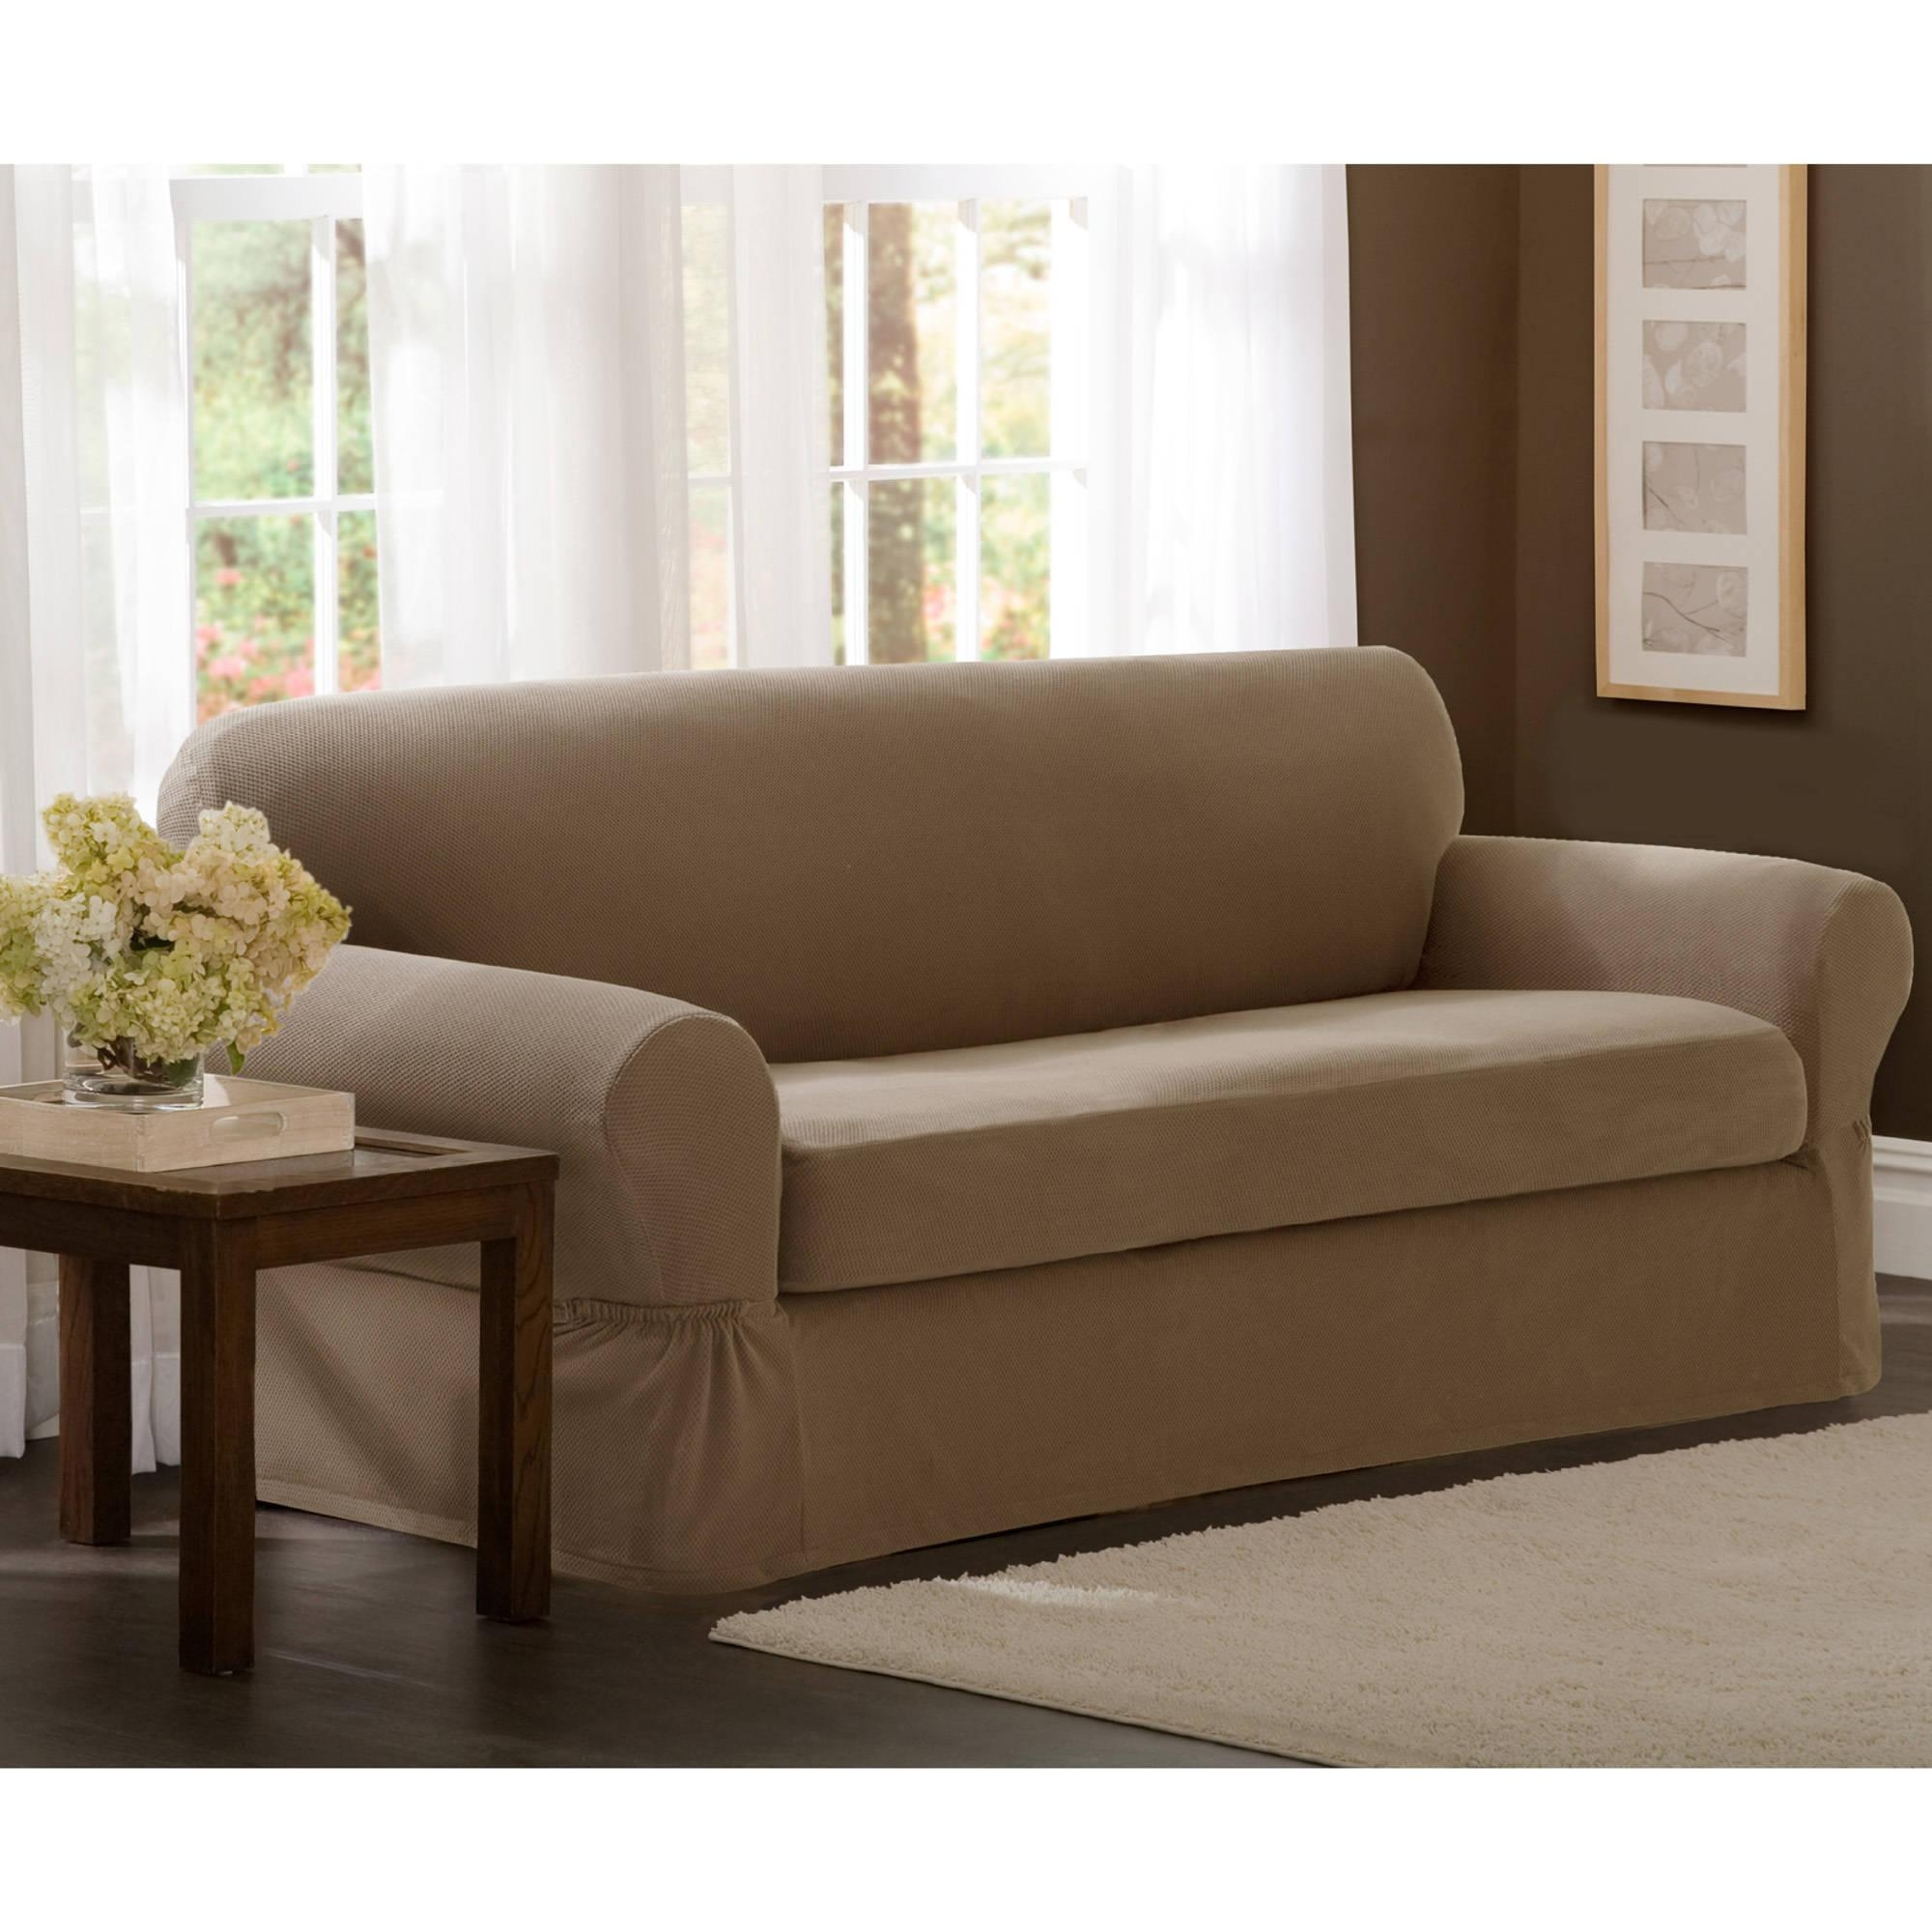 Featured Image of 2 Piece Sofa Covers